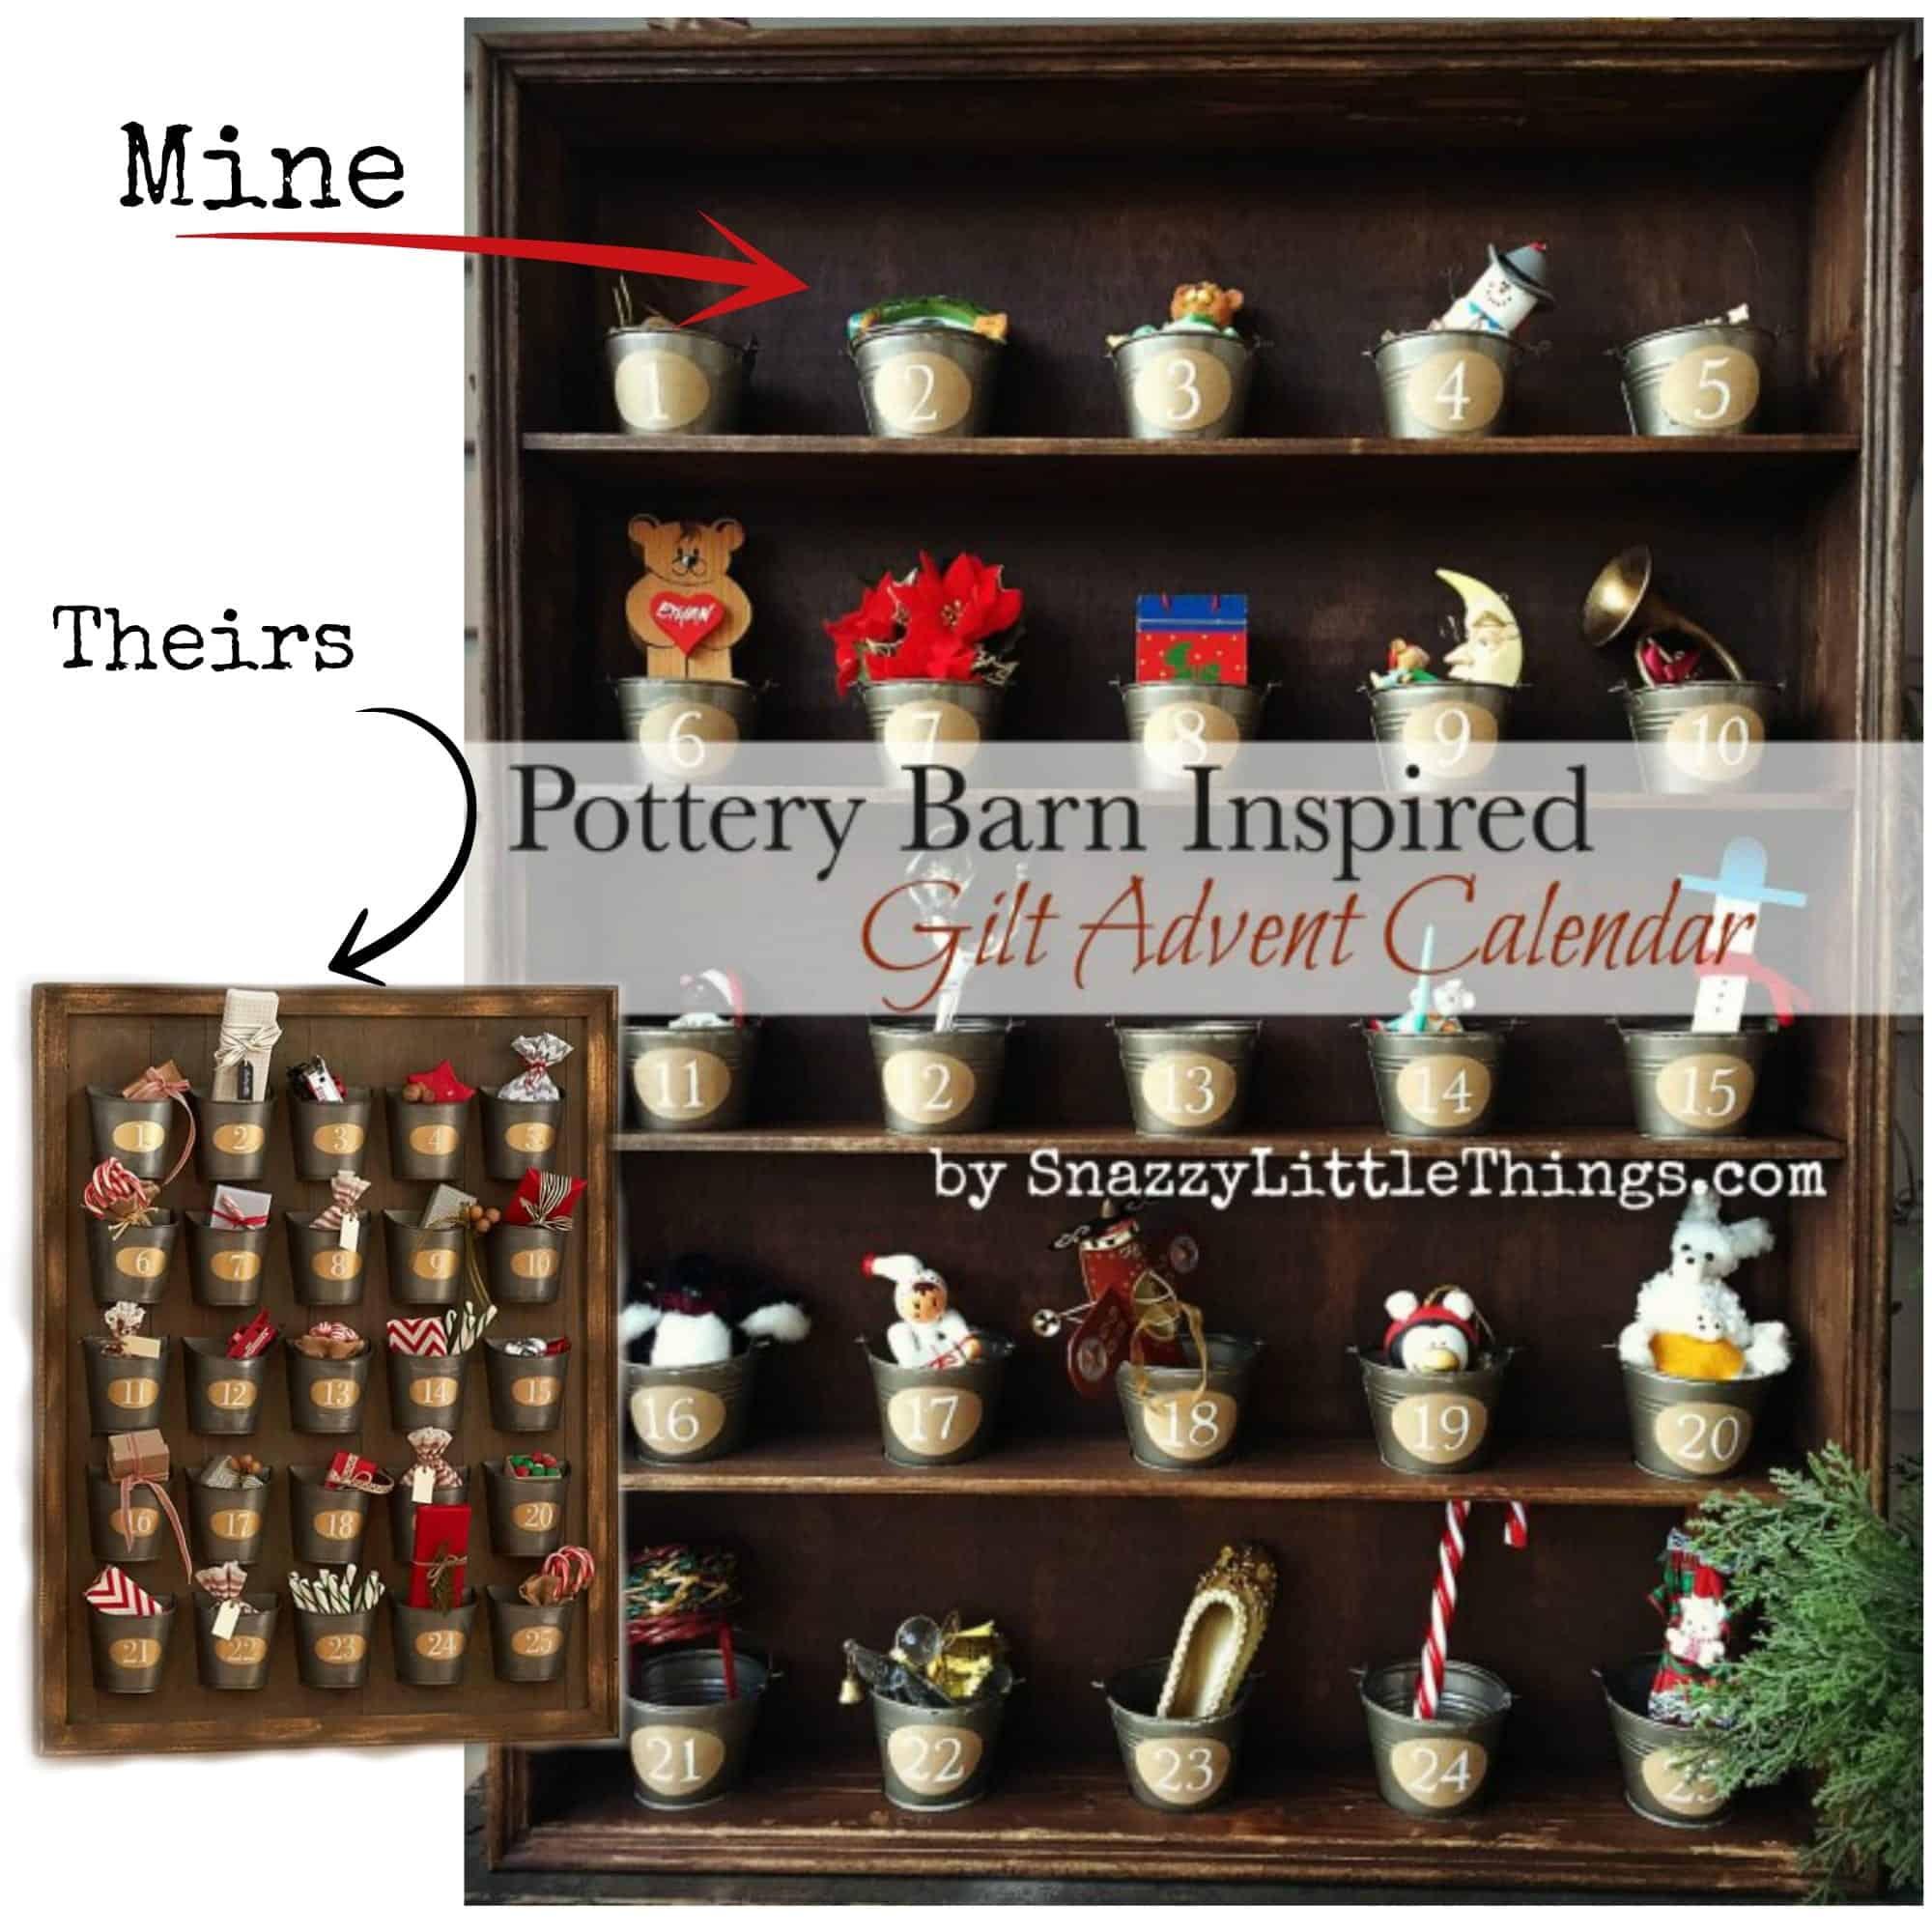 Holiday Decor Gift Ideas Pottery Barn Edition All My: Top Diy Projects 2014